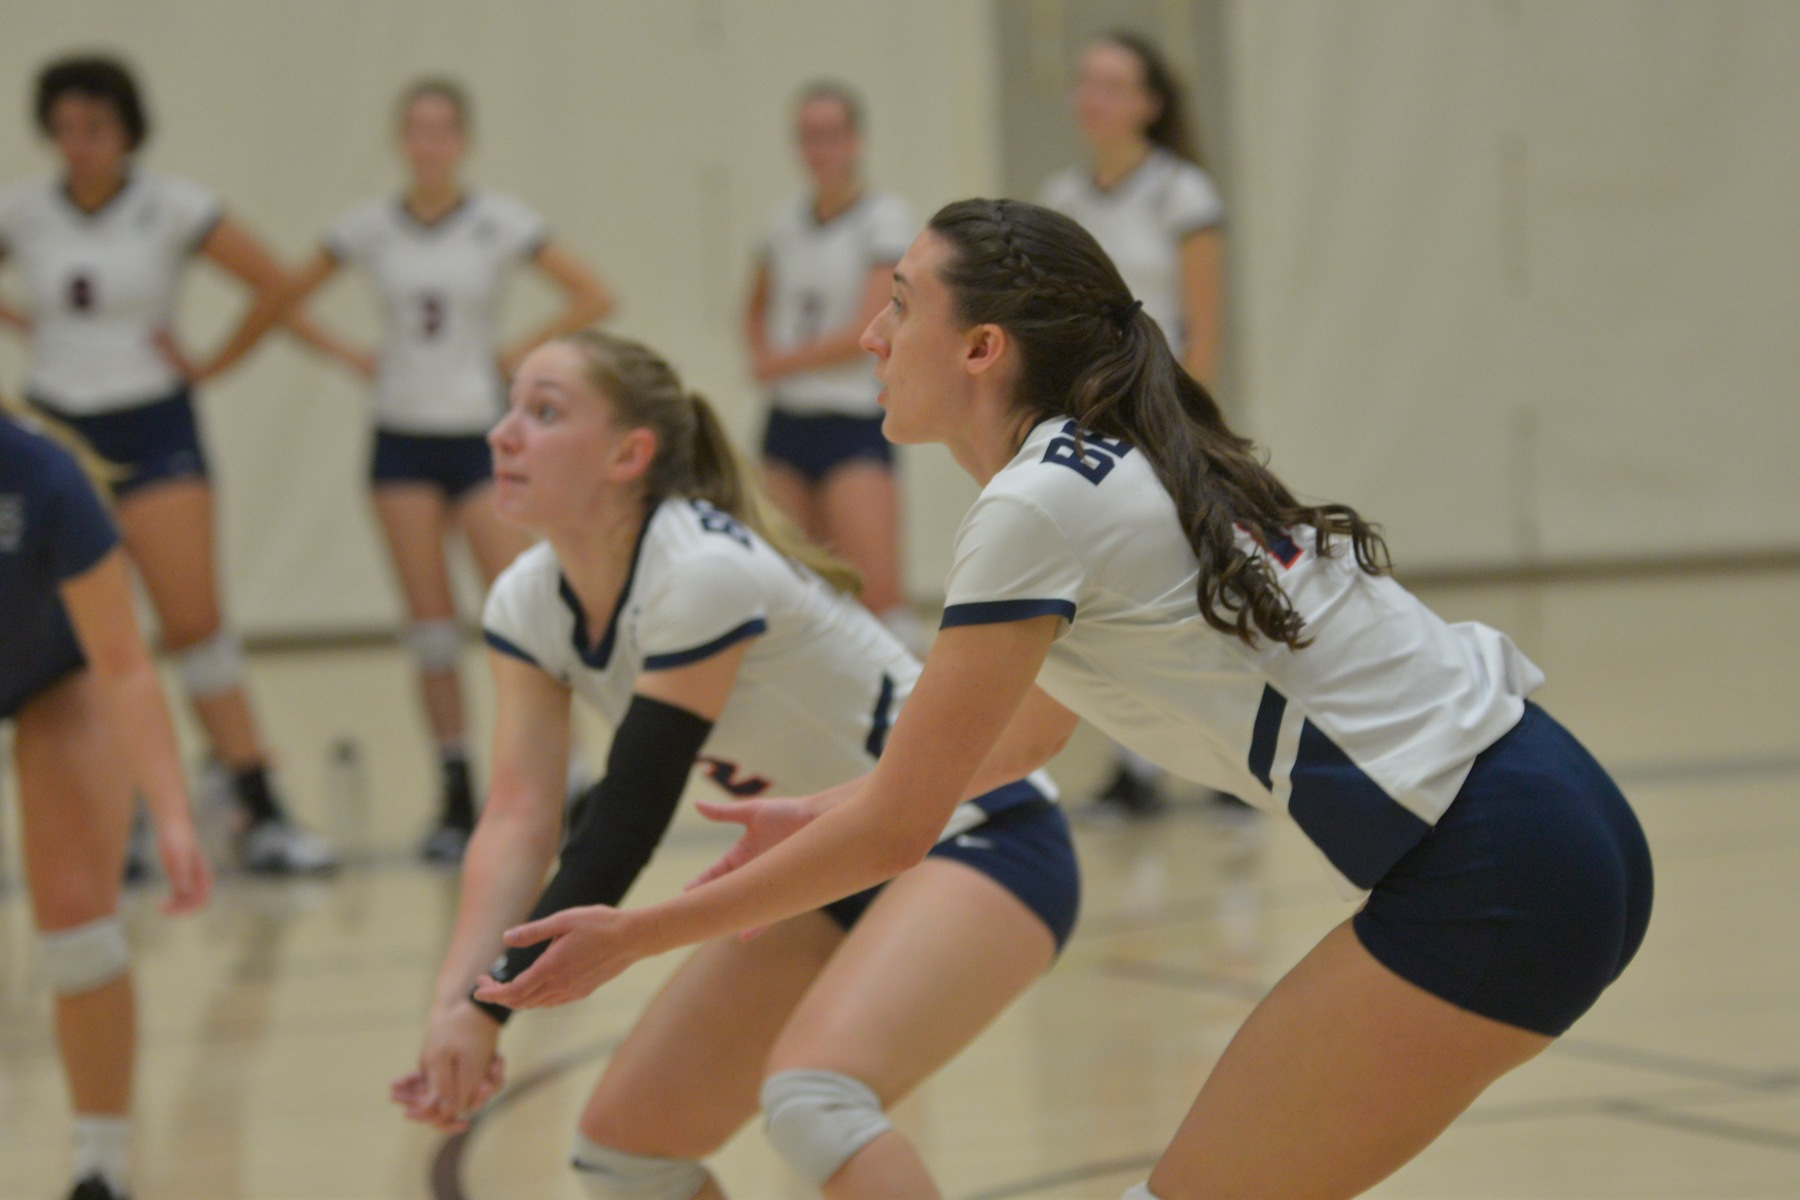 Women's Volleyball Splits at Lycoming Tip-Off Classic